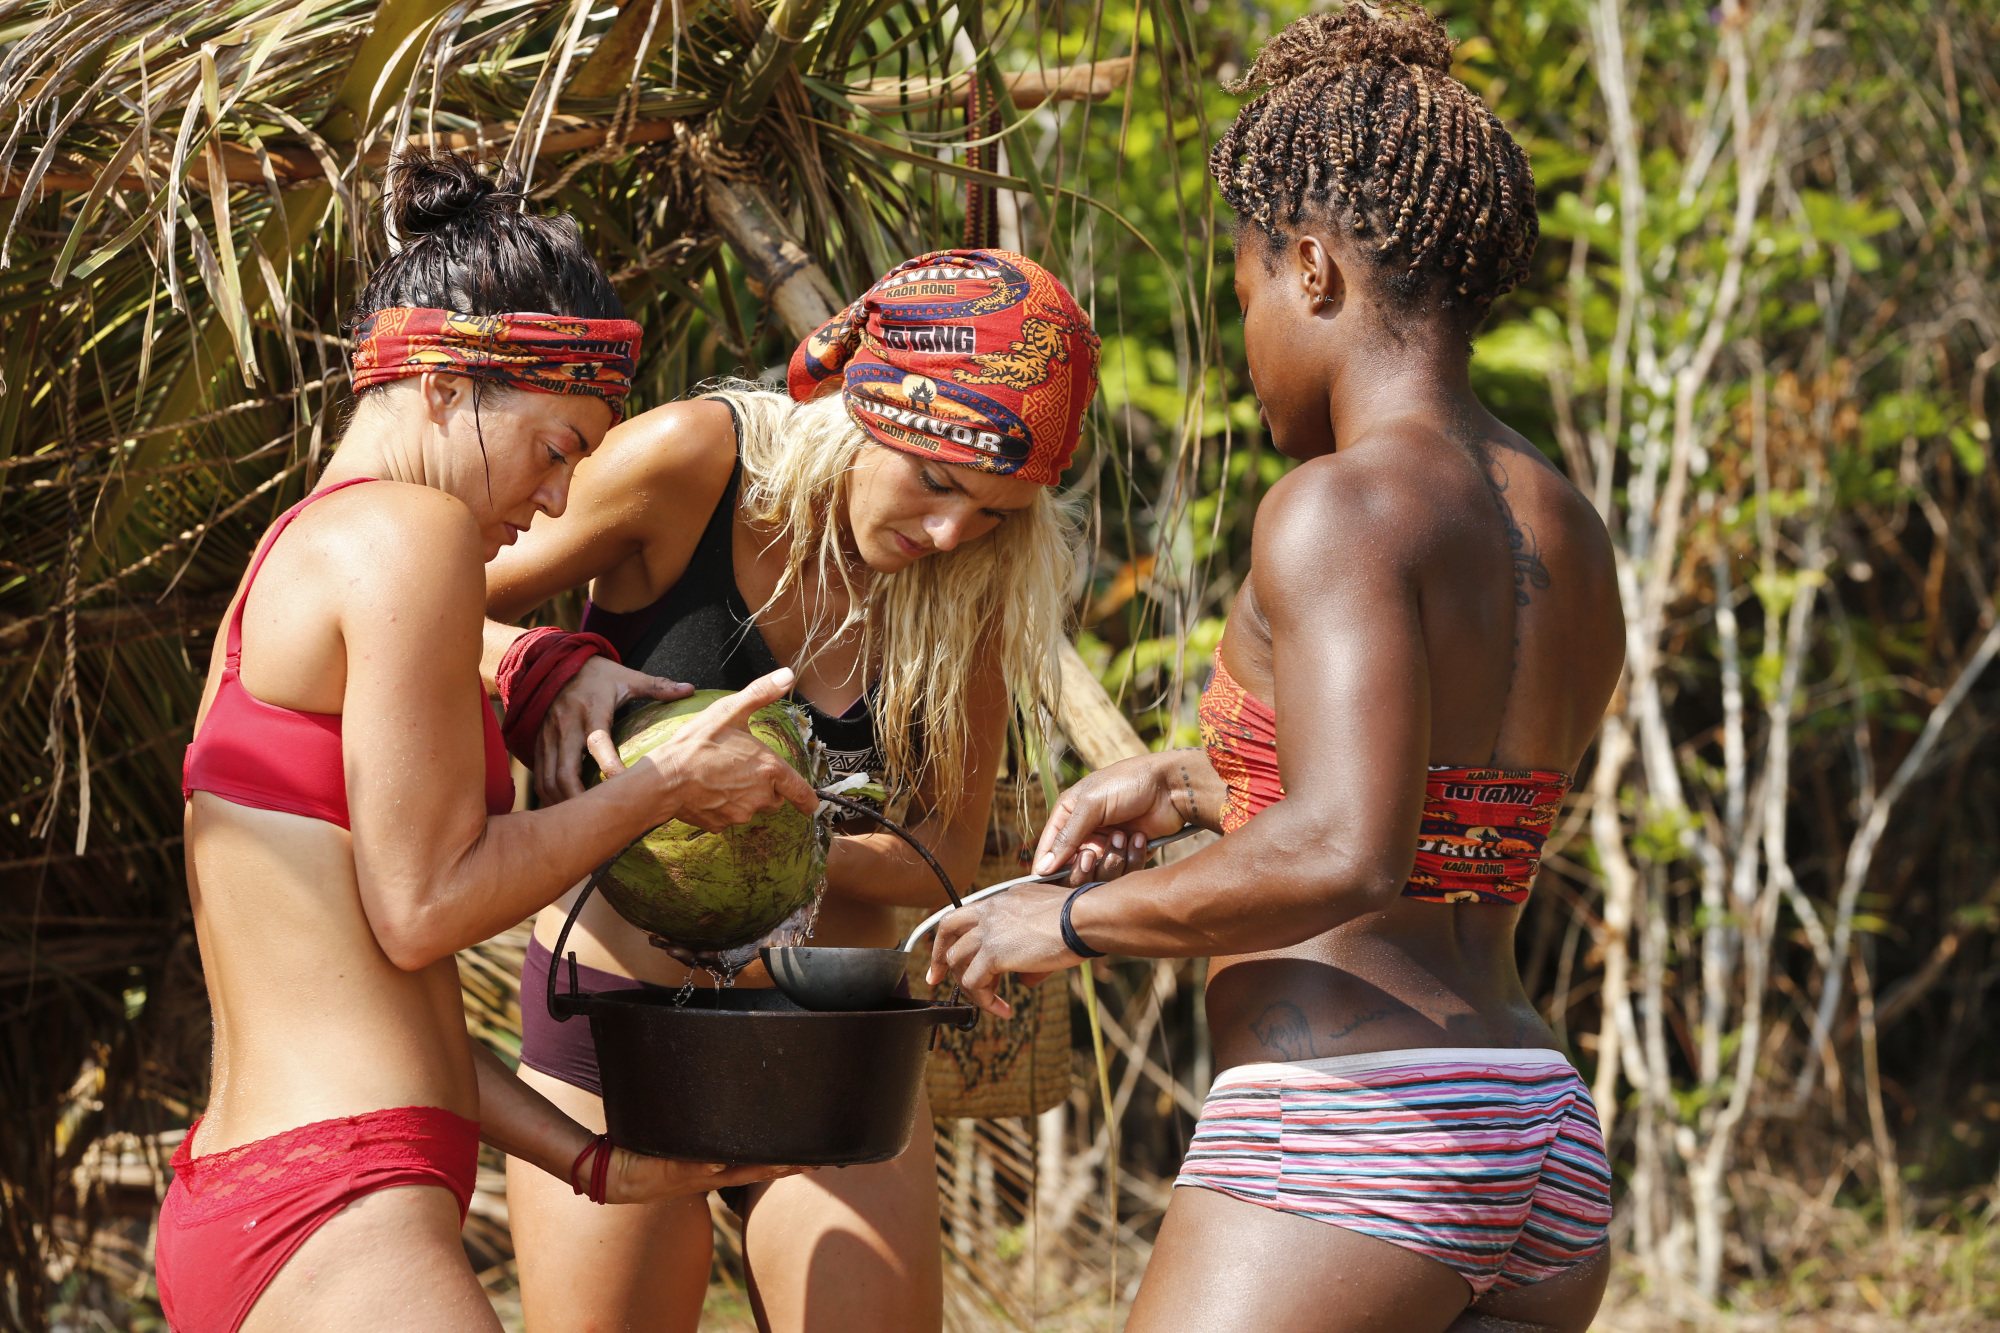 Jennifer Lanzetti works with Alecia Holden and Cydney Gillon at Brawn camp on Survivor: Kaoh Rong